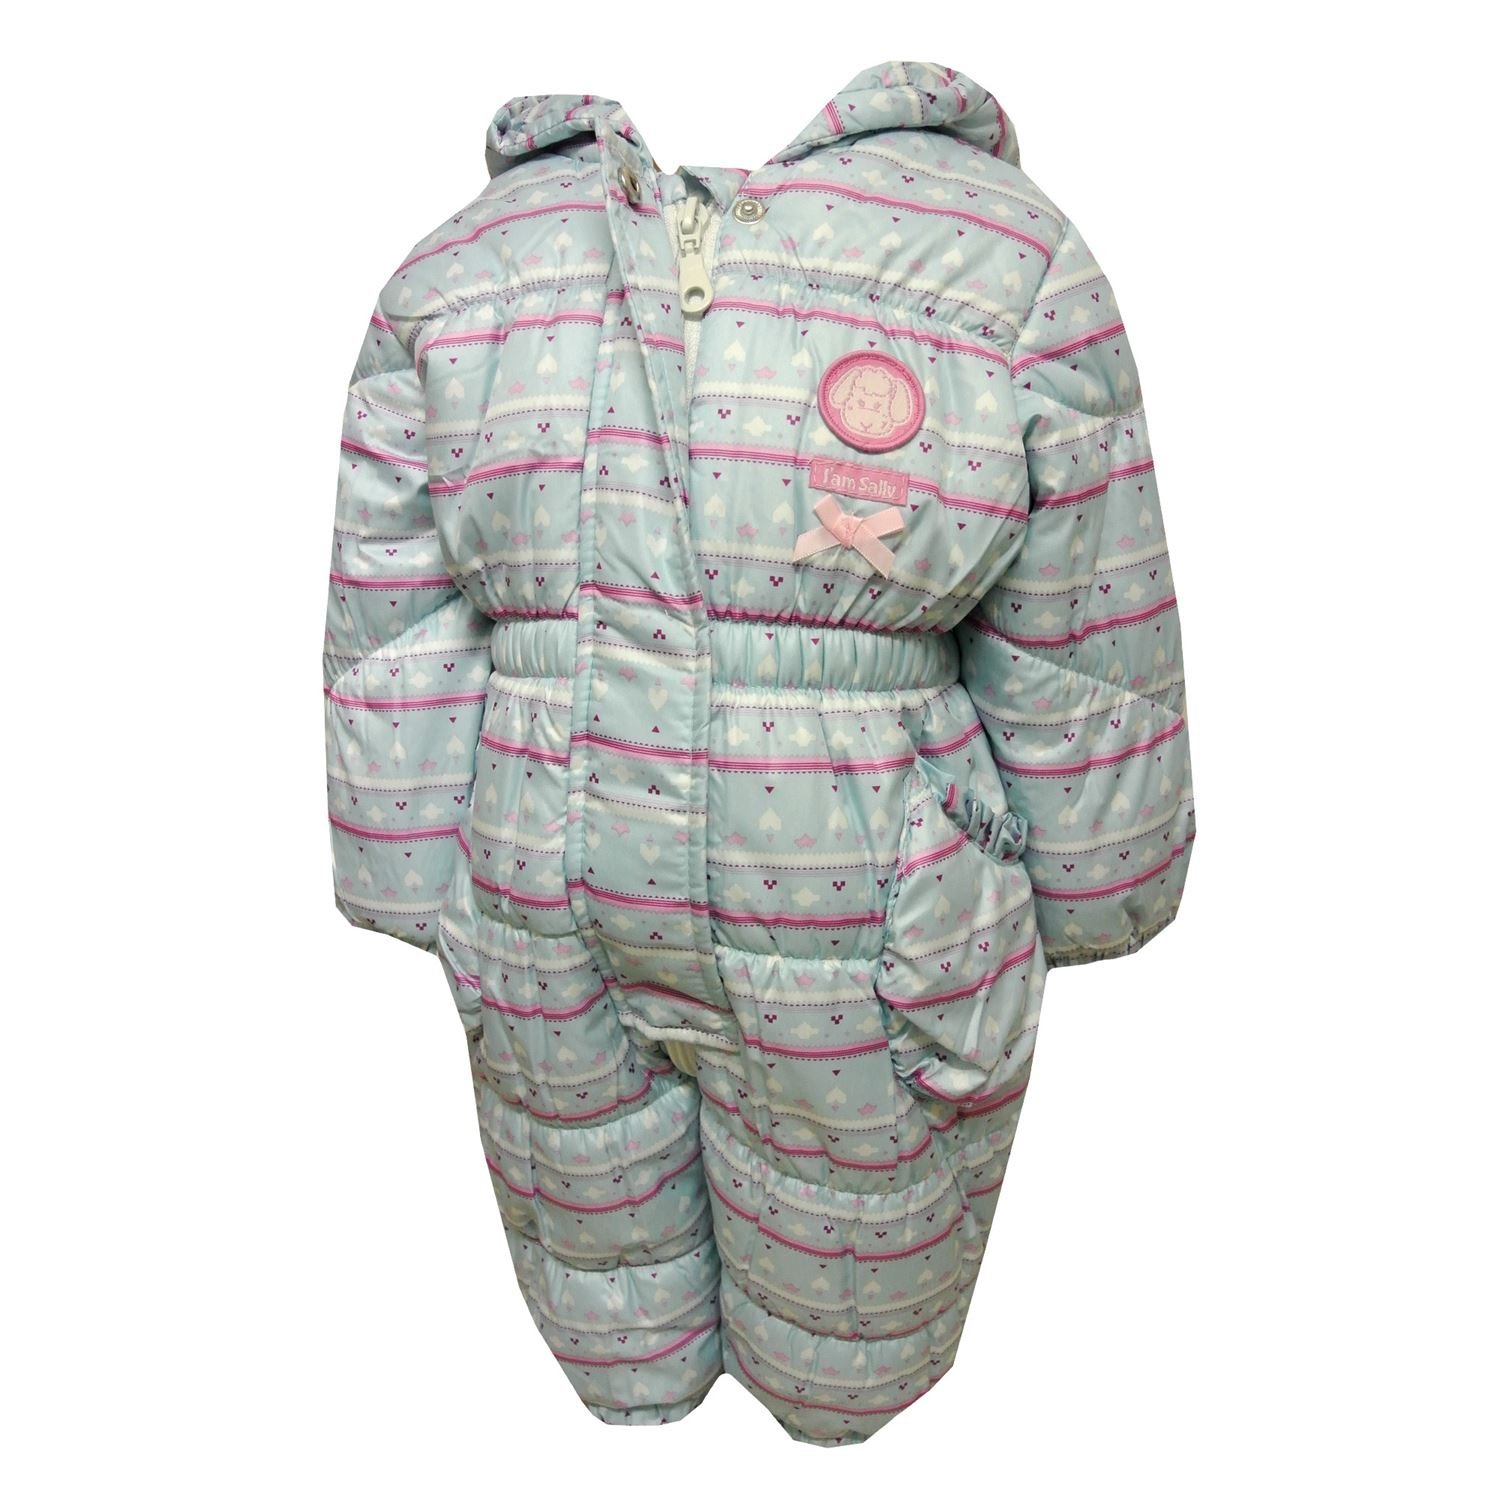 Outburst - Snow overall snowsuit baby girl fleece lining waterproof, light blue